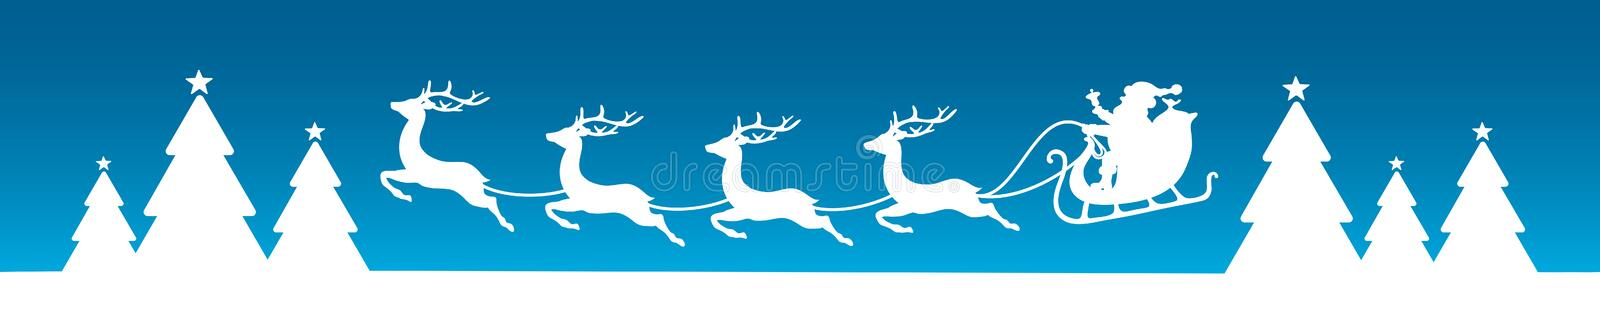 Banner Flying Christmas Sleigh With Forest Blue Background vector illustration